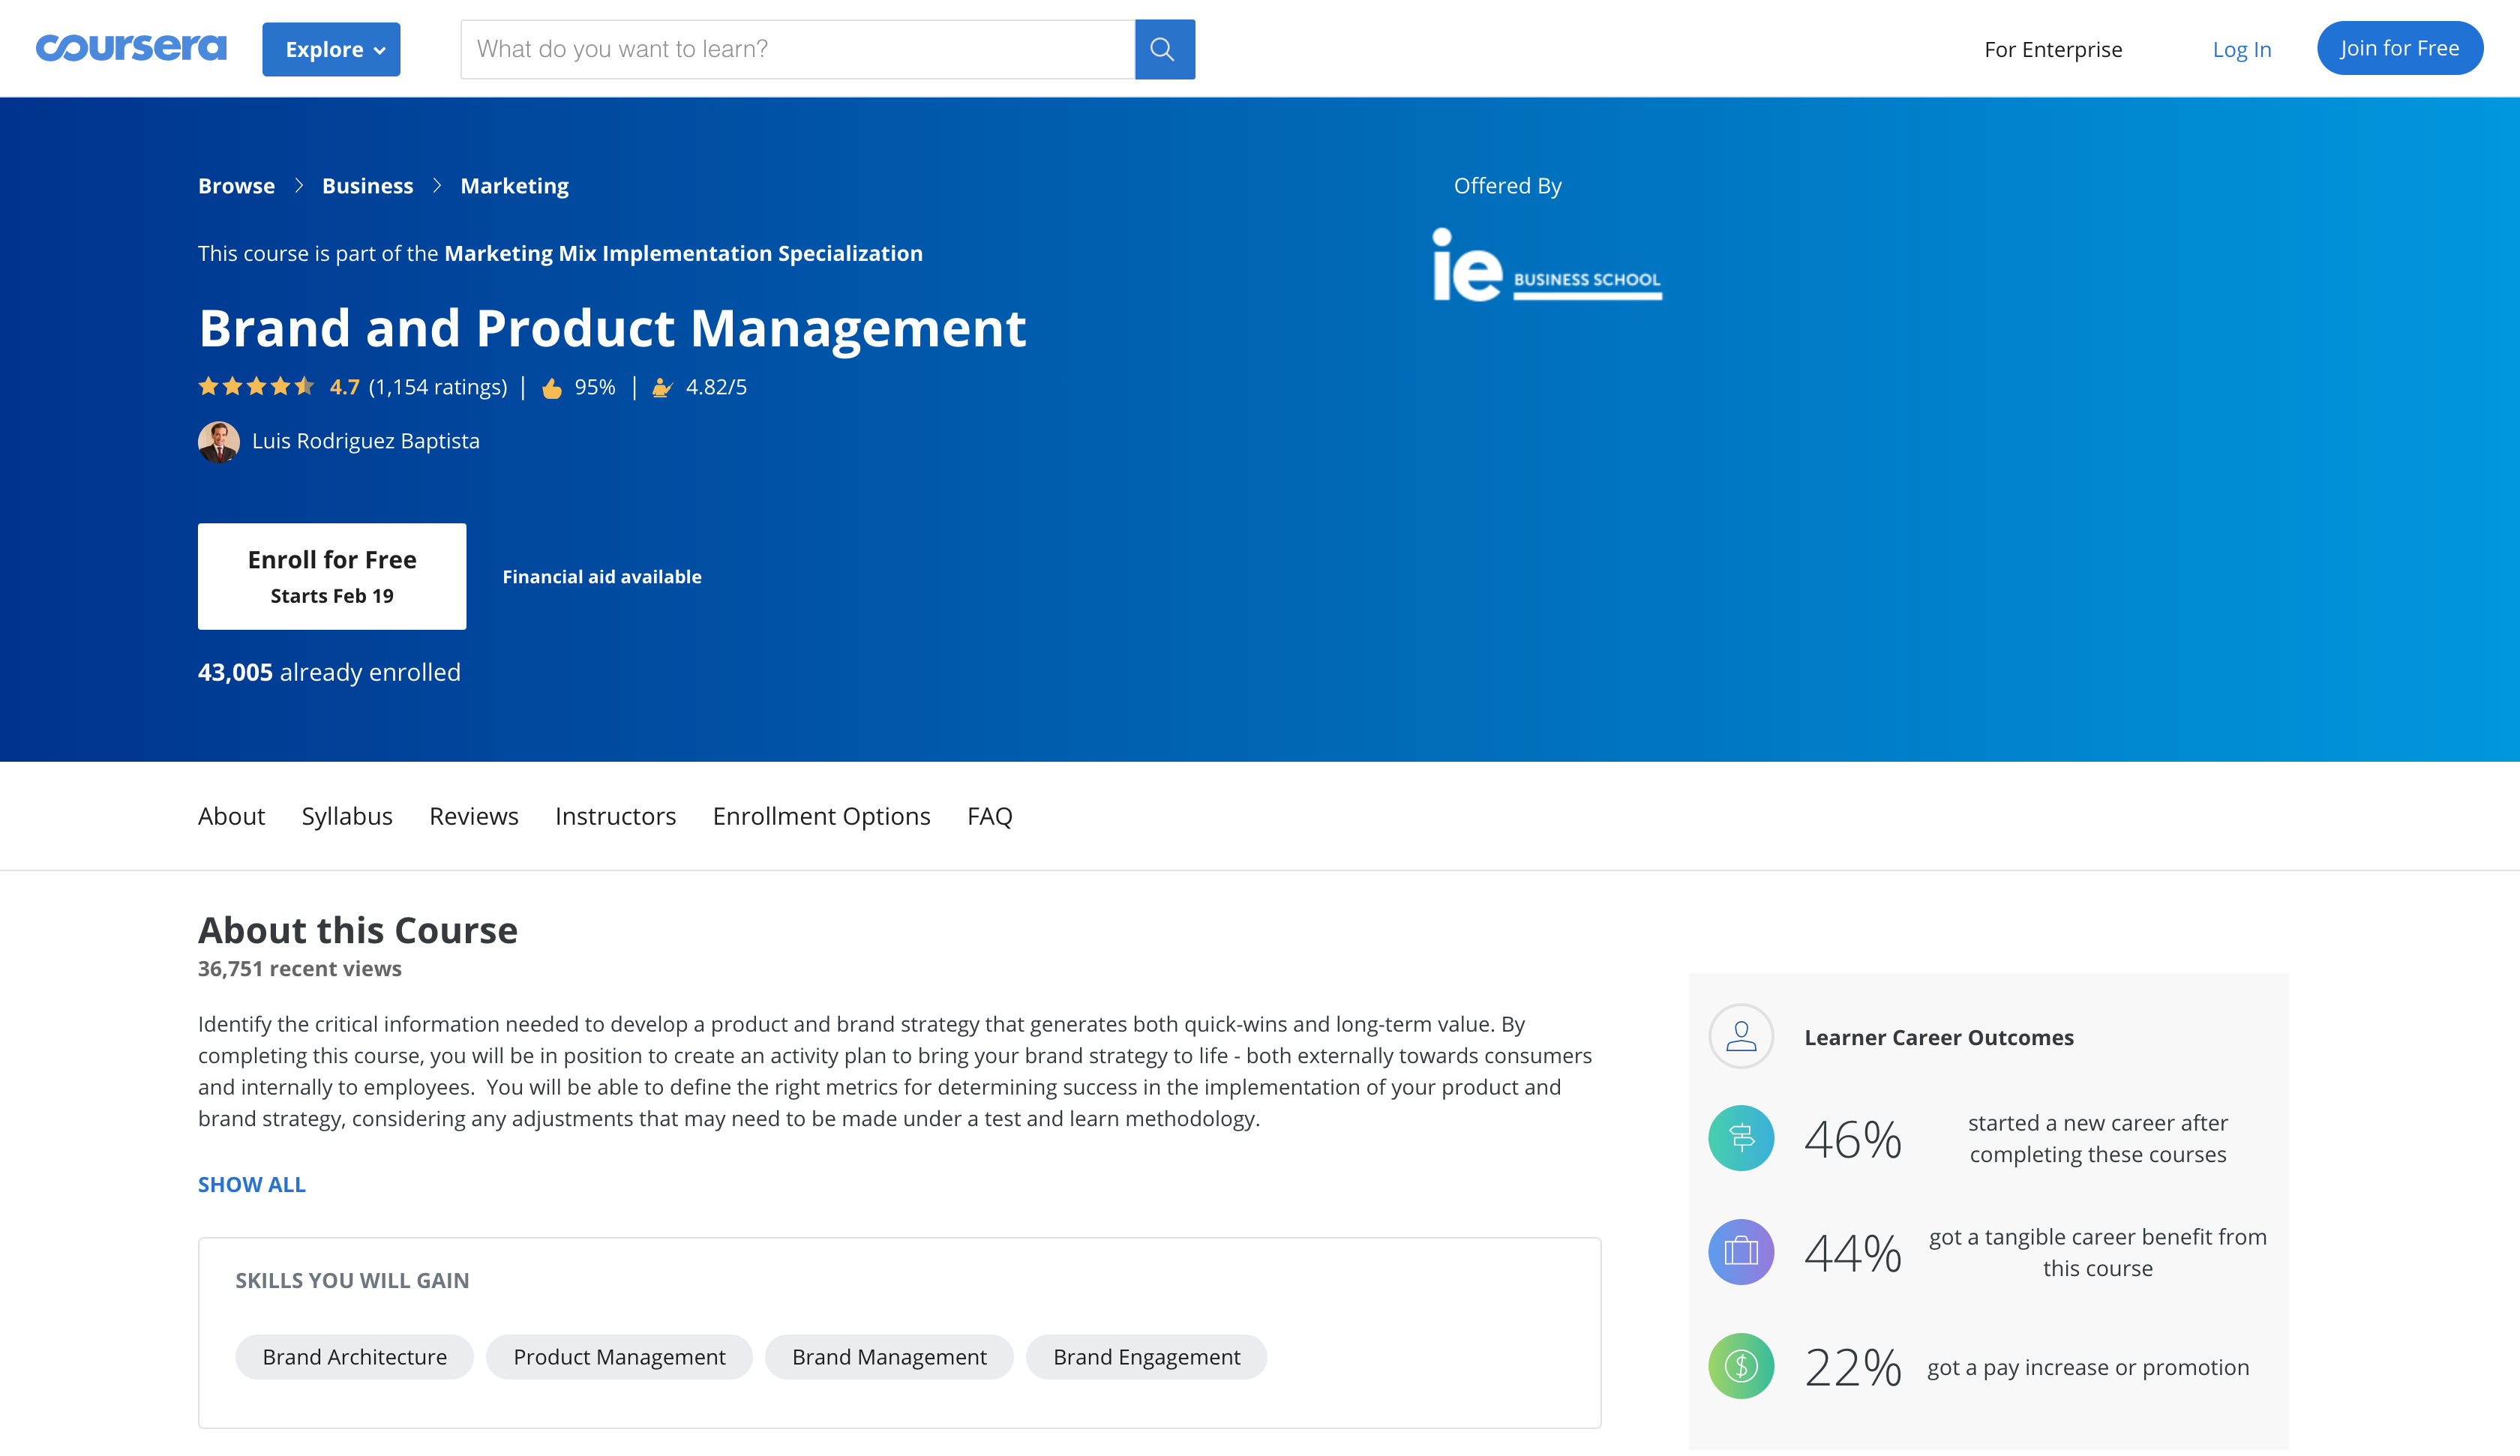 Brand and Product Management Certification Course (Coursera)